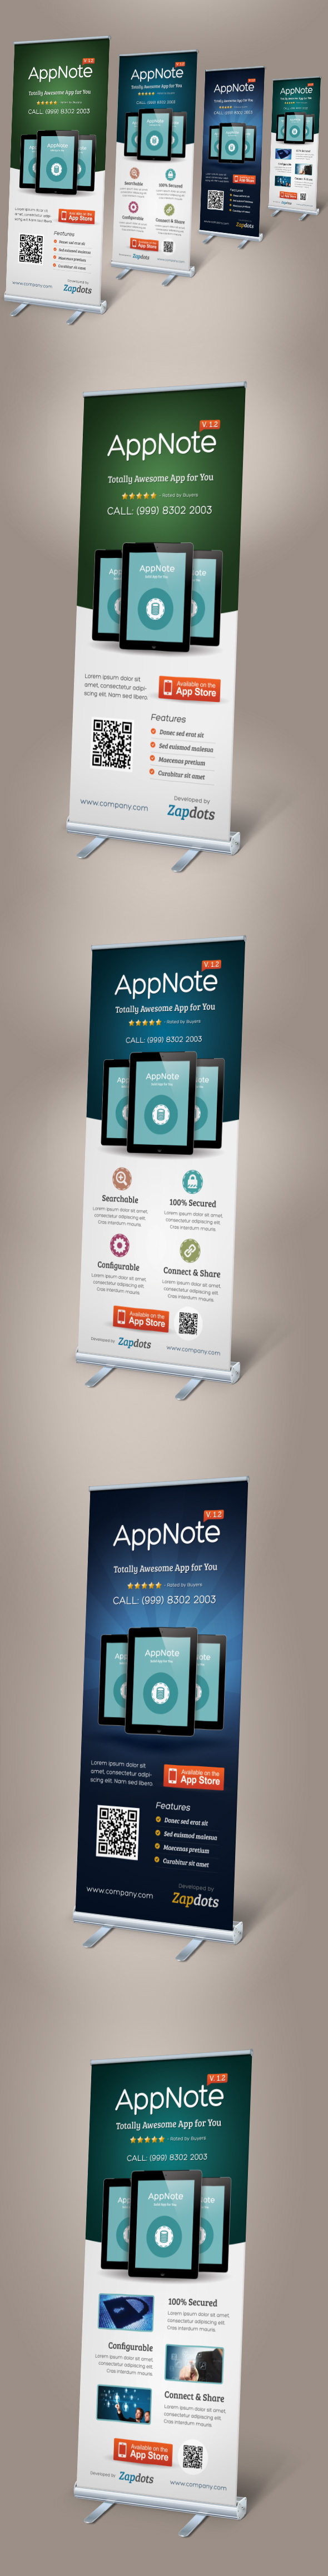 mobile app promotion roll up banner templates on behance print